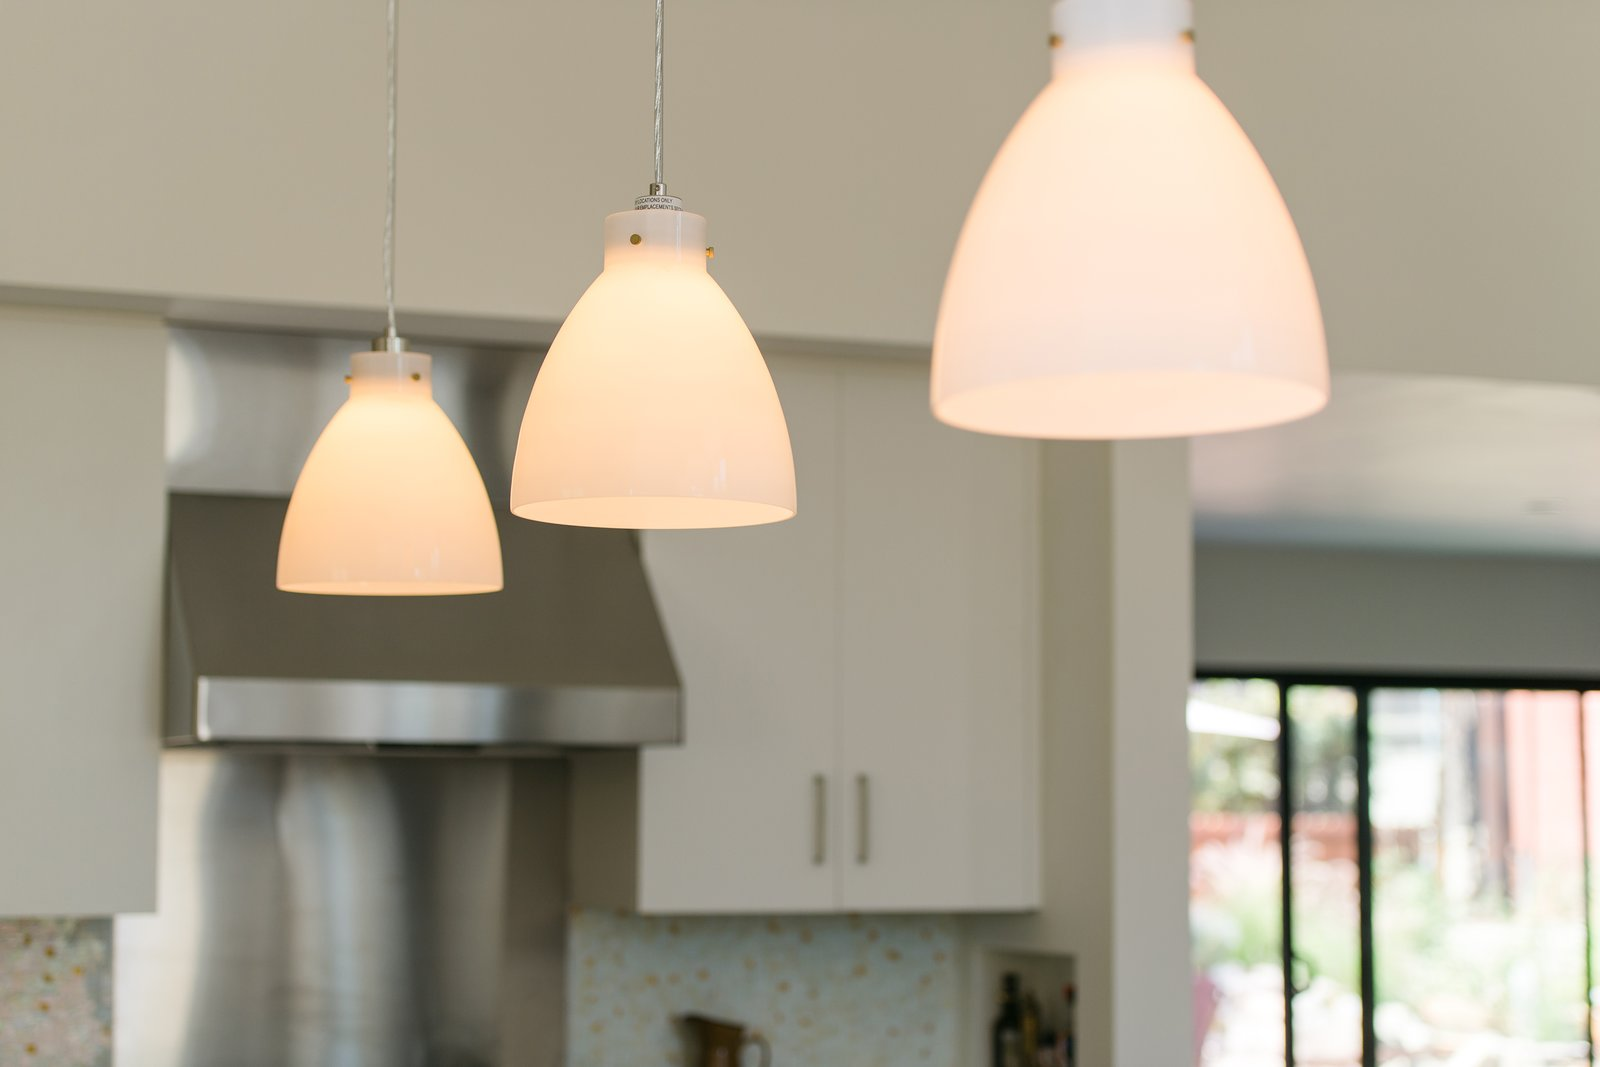 Minimal pendants add warm, intimate lighting at the oversized kitchen island.  A California Ranch Home, Reimagined by MYD studio, inc.